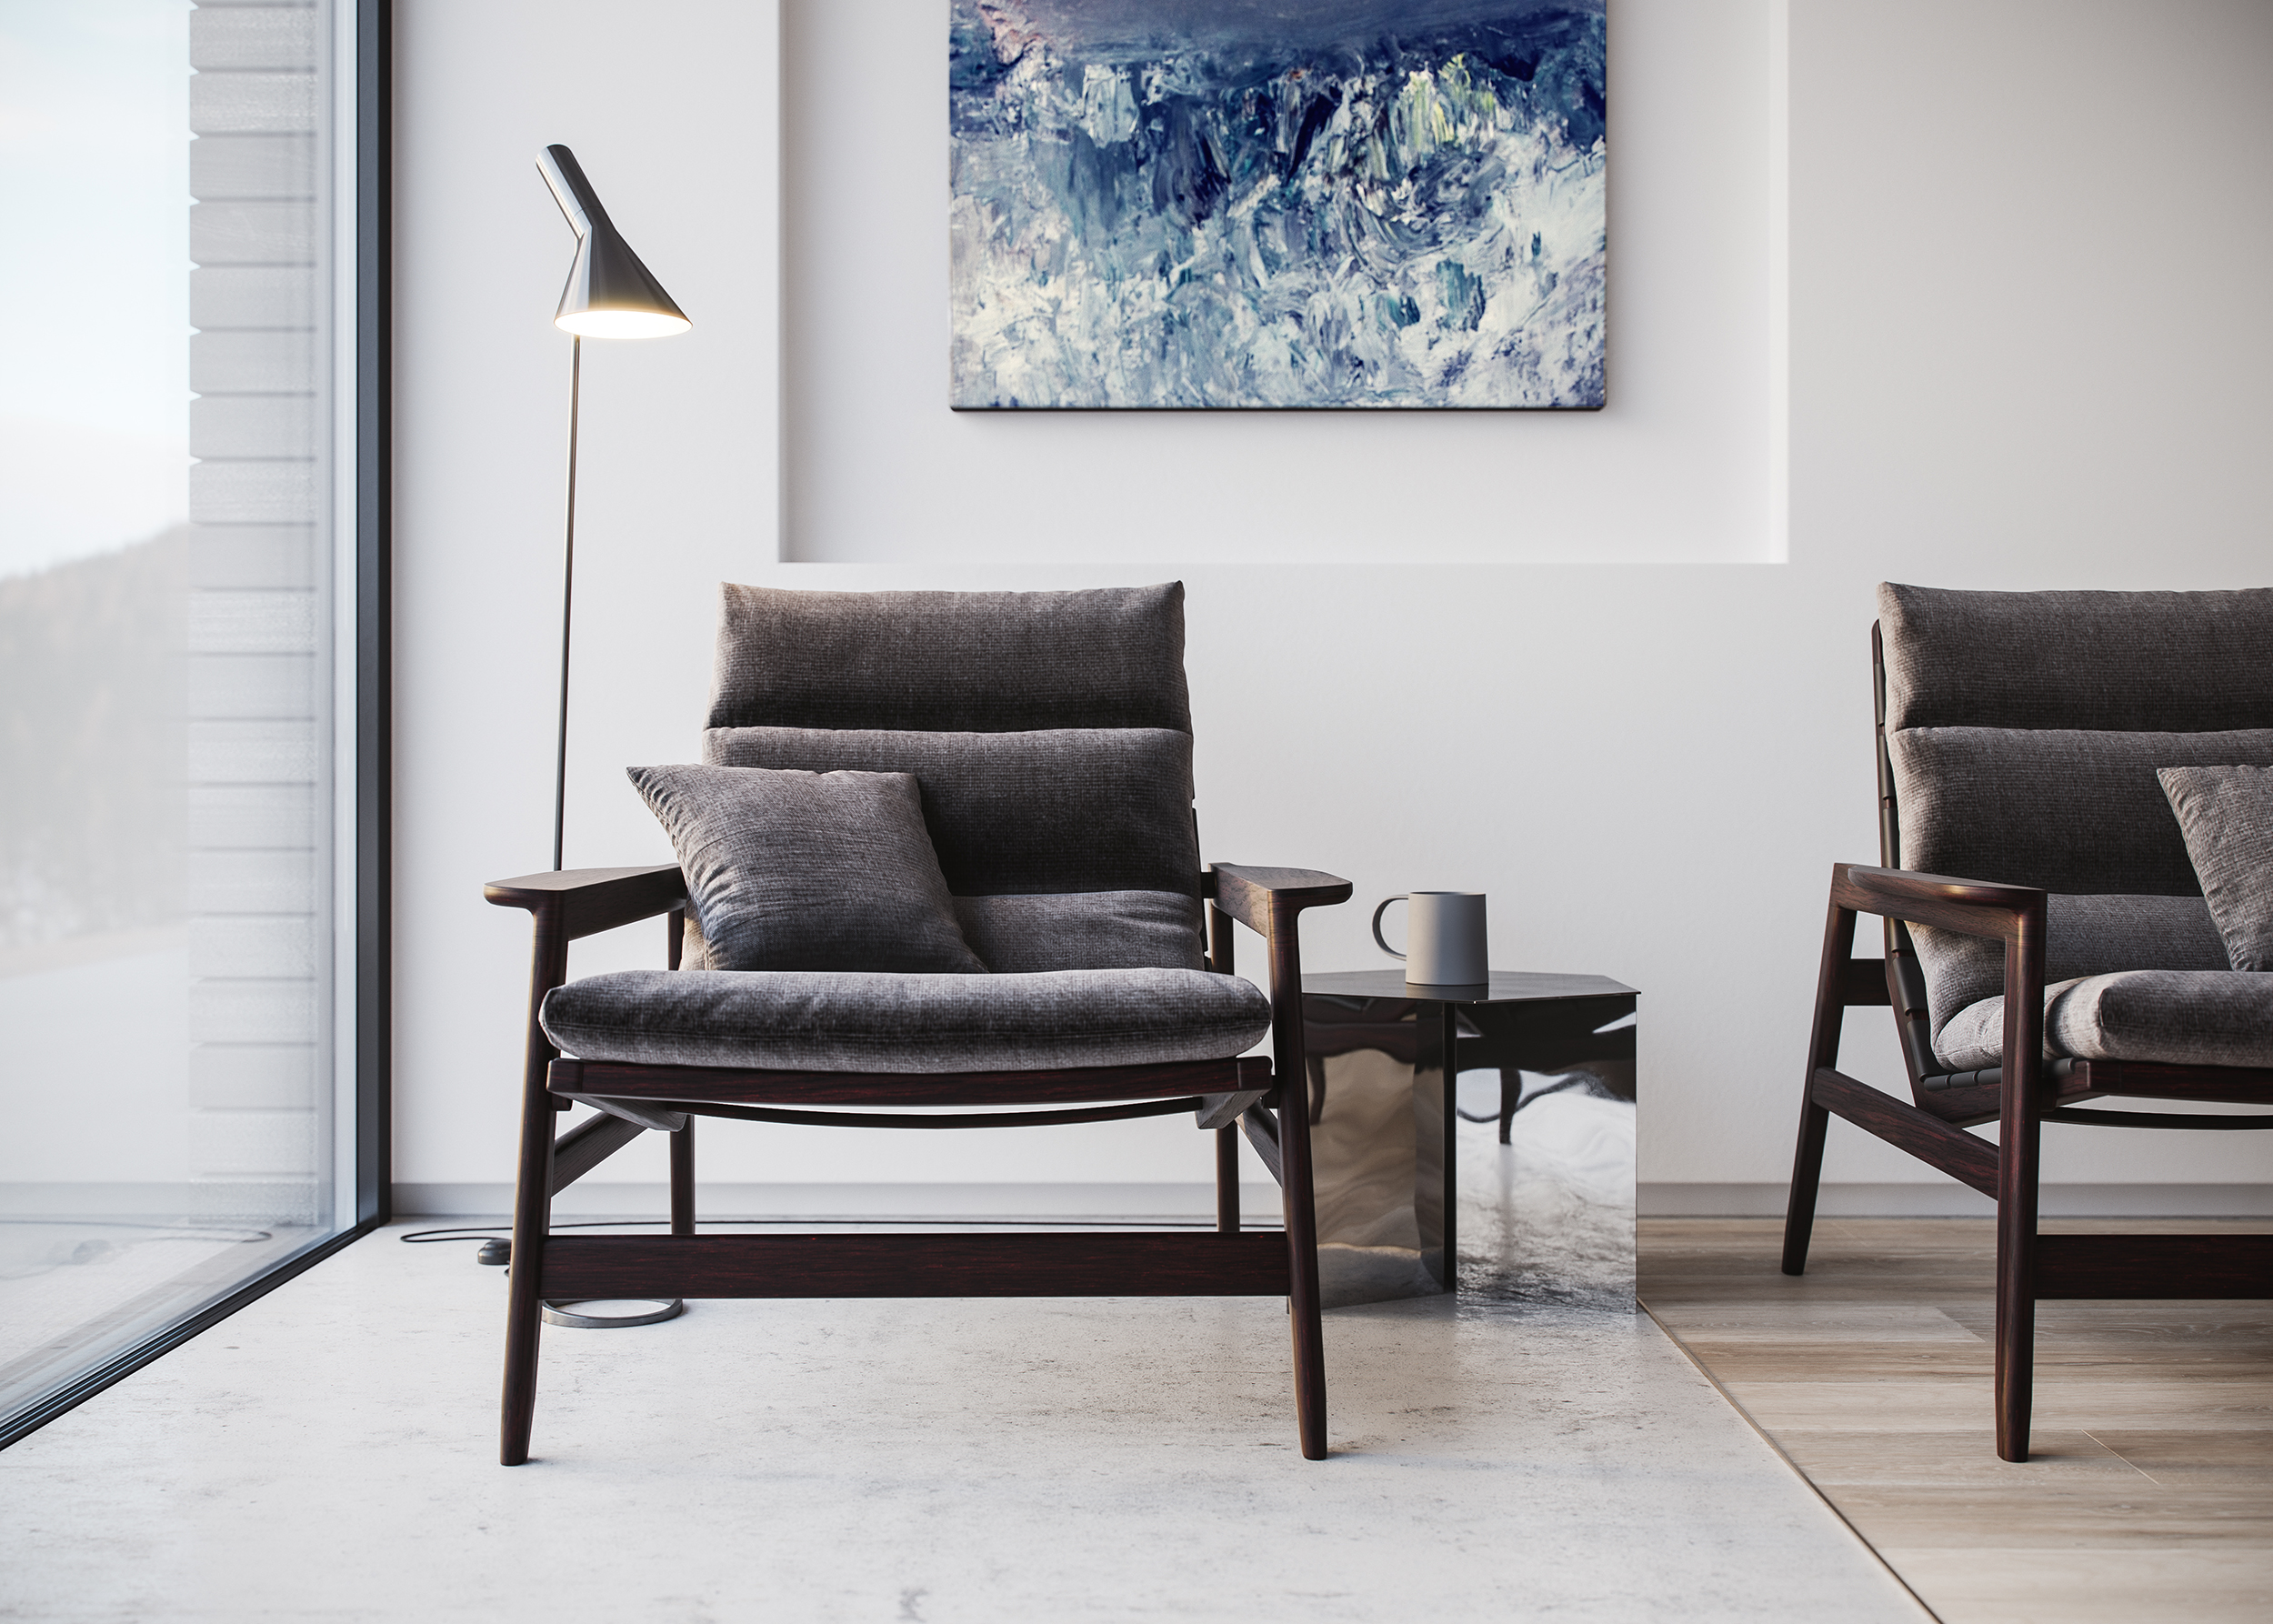 chair, luxury, highlands, house, bespoke, contemporary